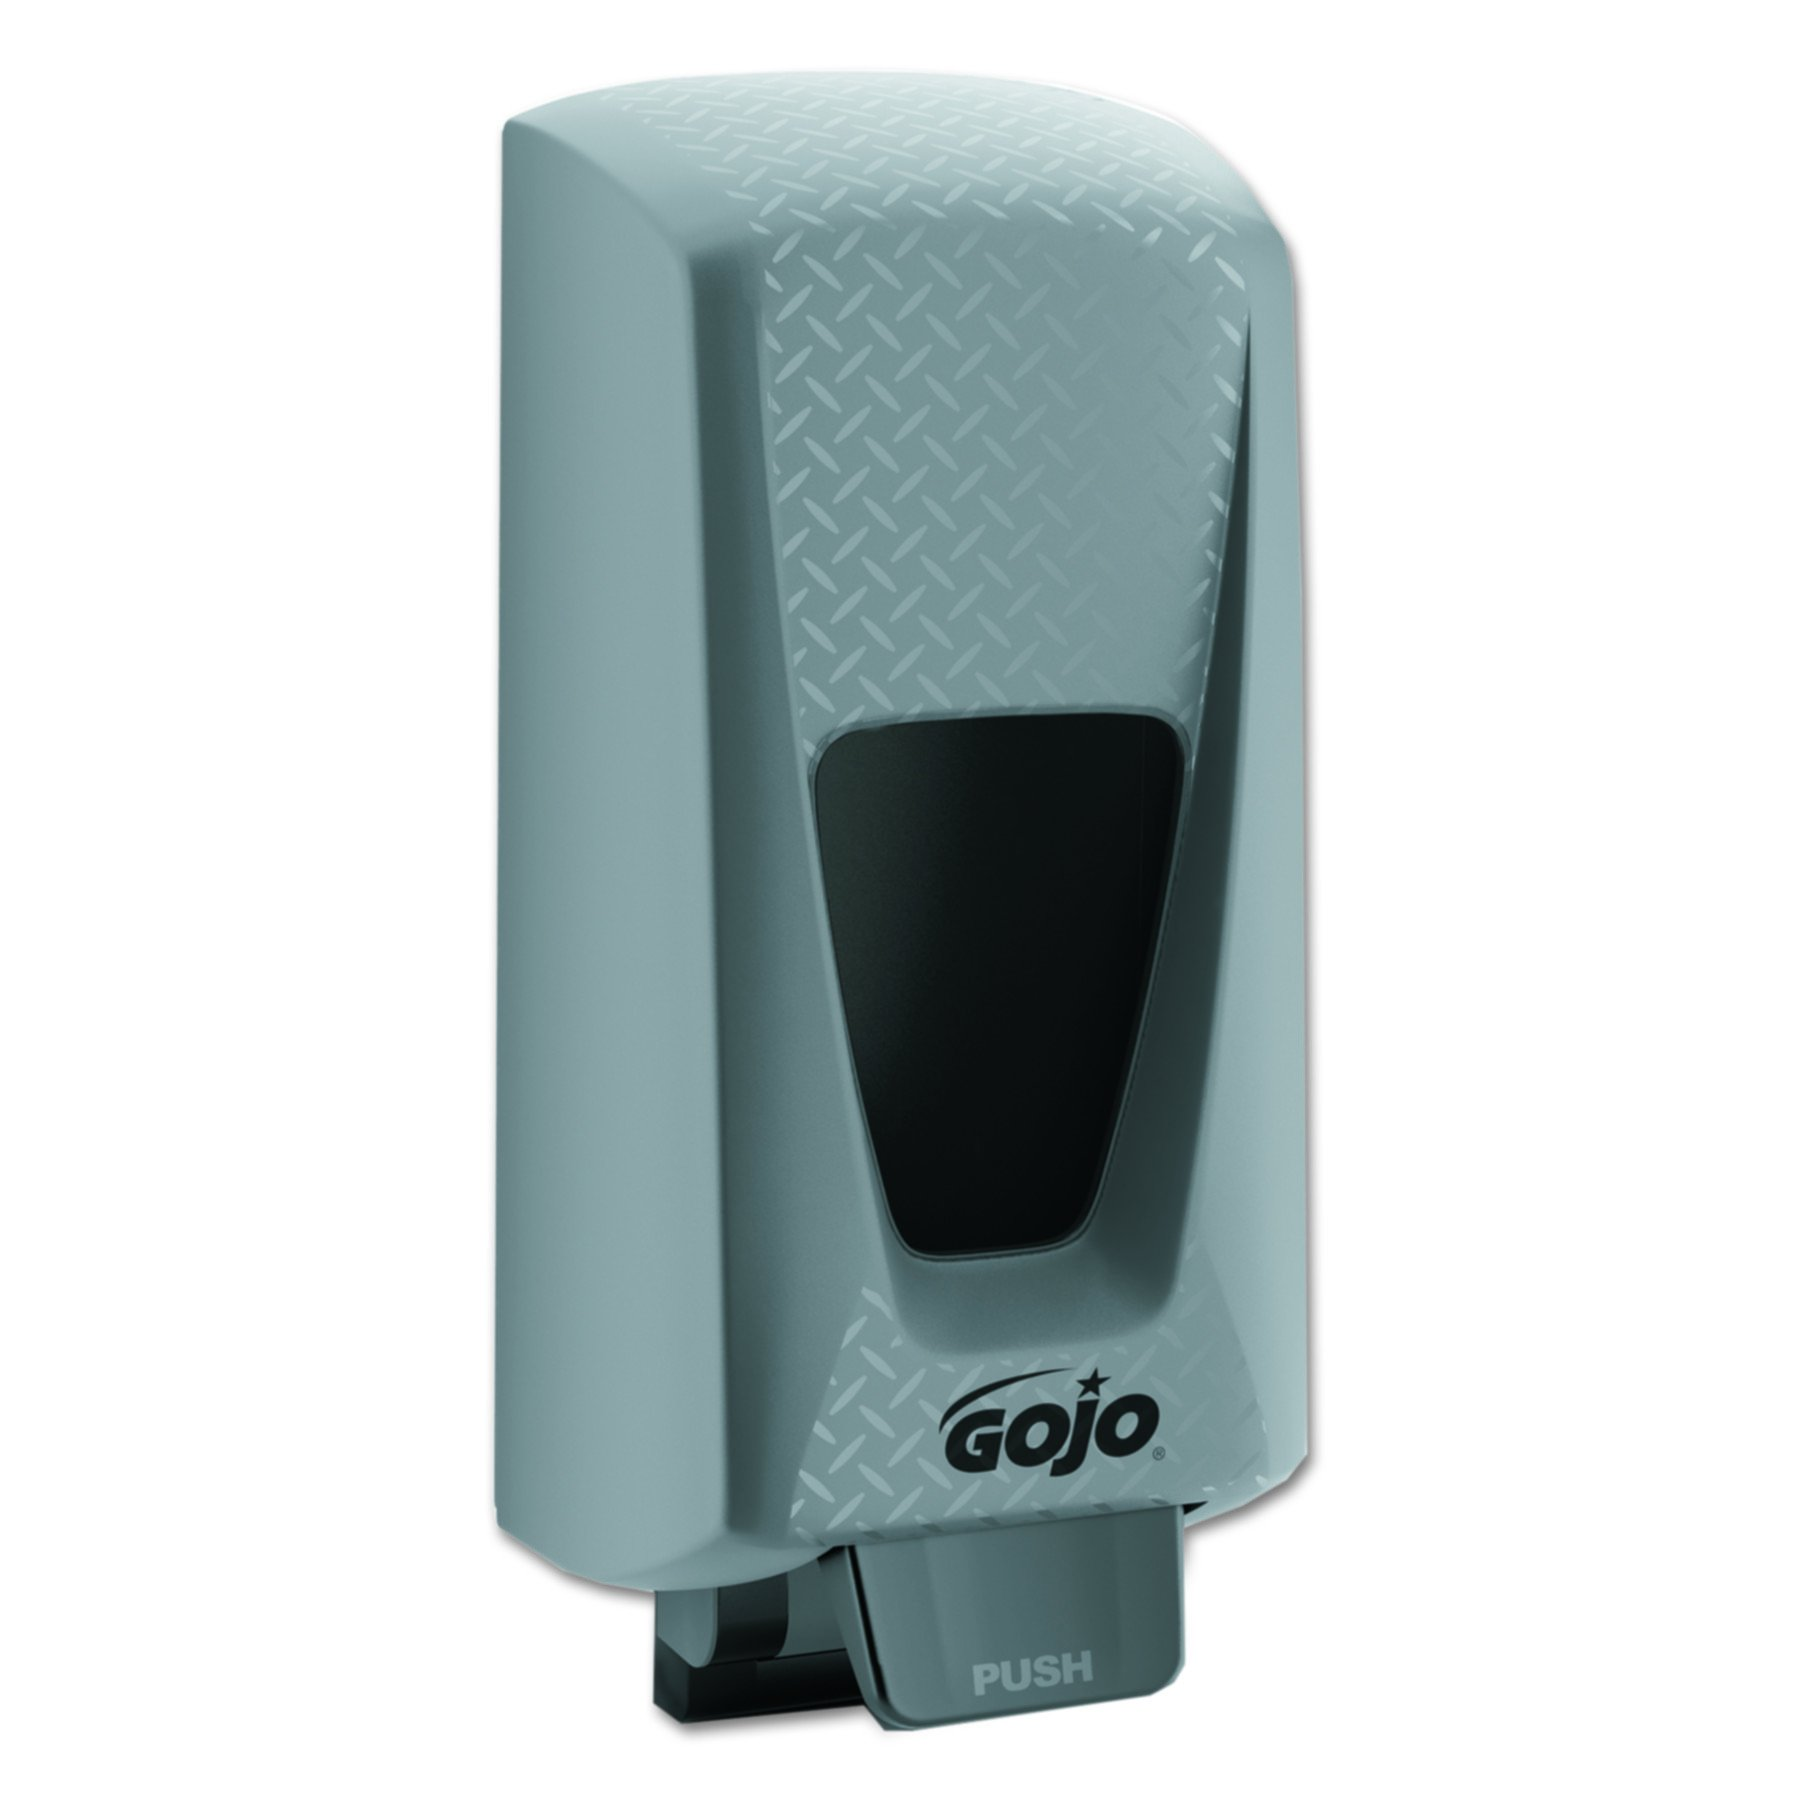 GOJO 7500-01 Black Pro 5000 Dispenser